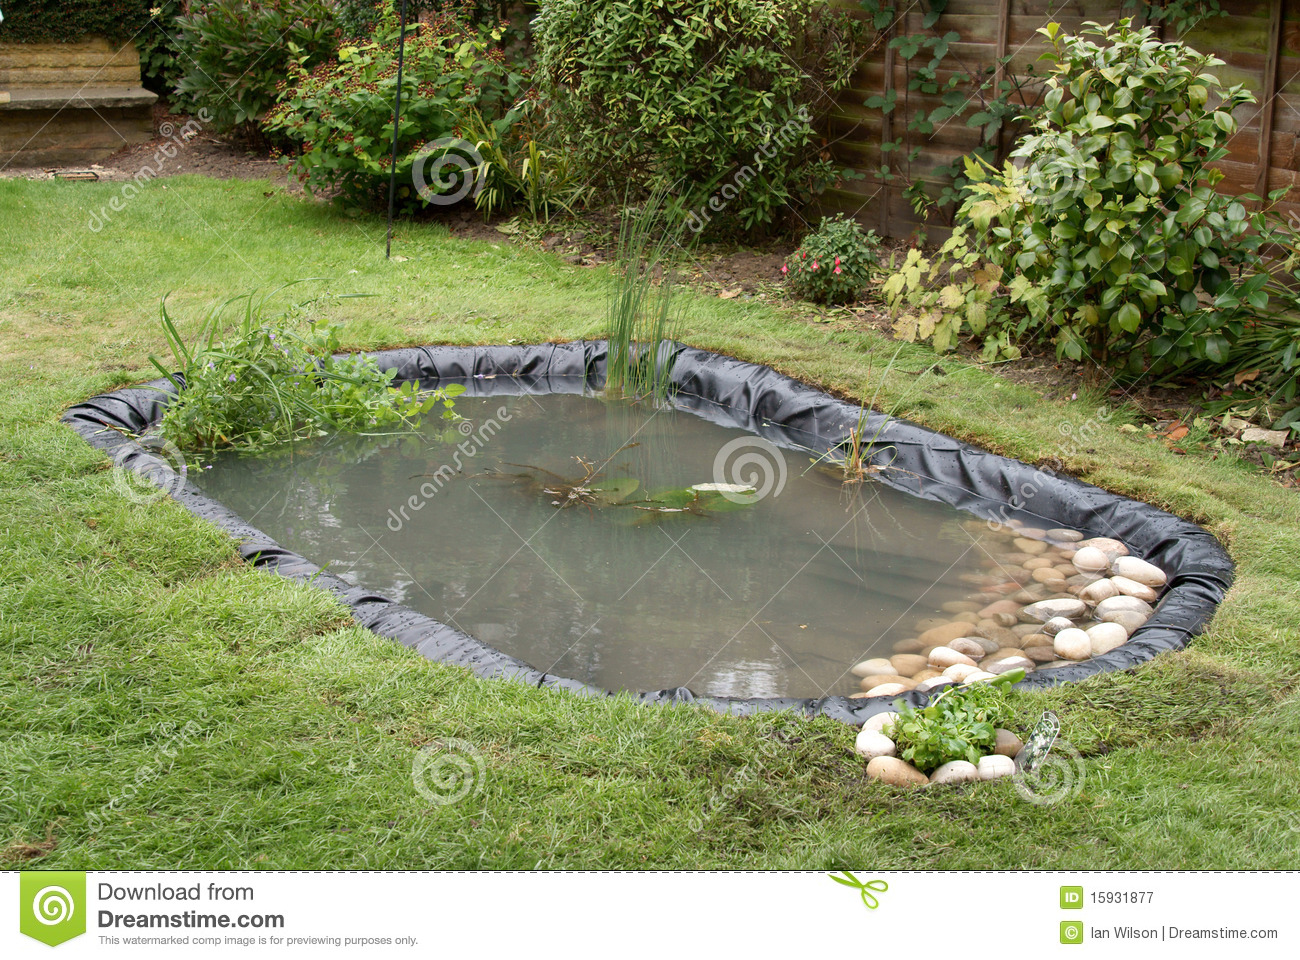 Making a garden pond stock image image of lillies rubber for Making a garden pond